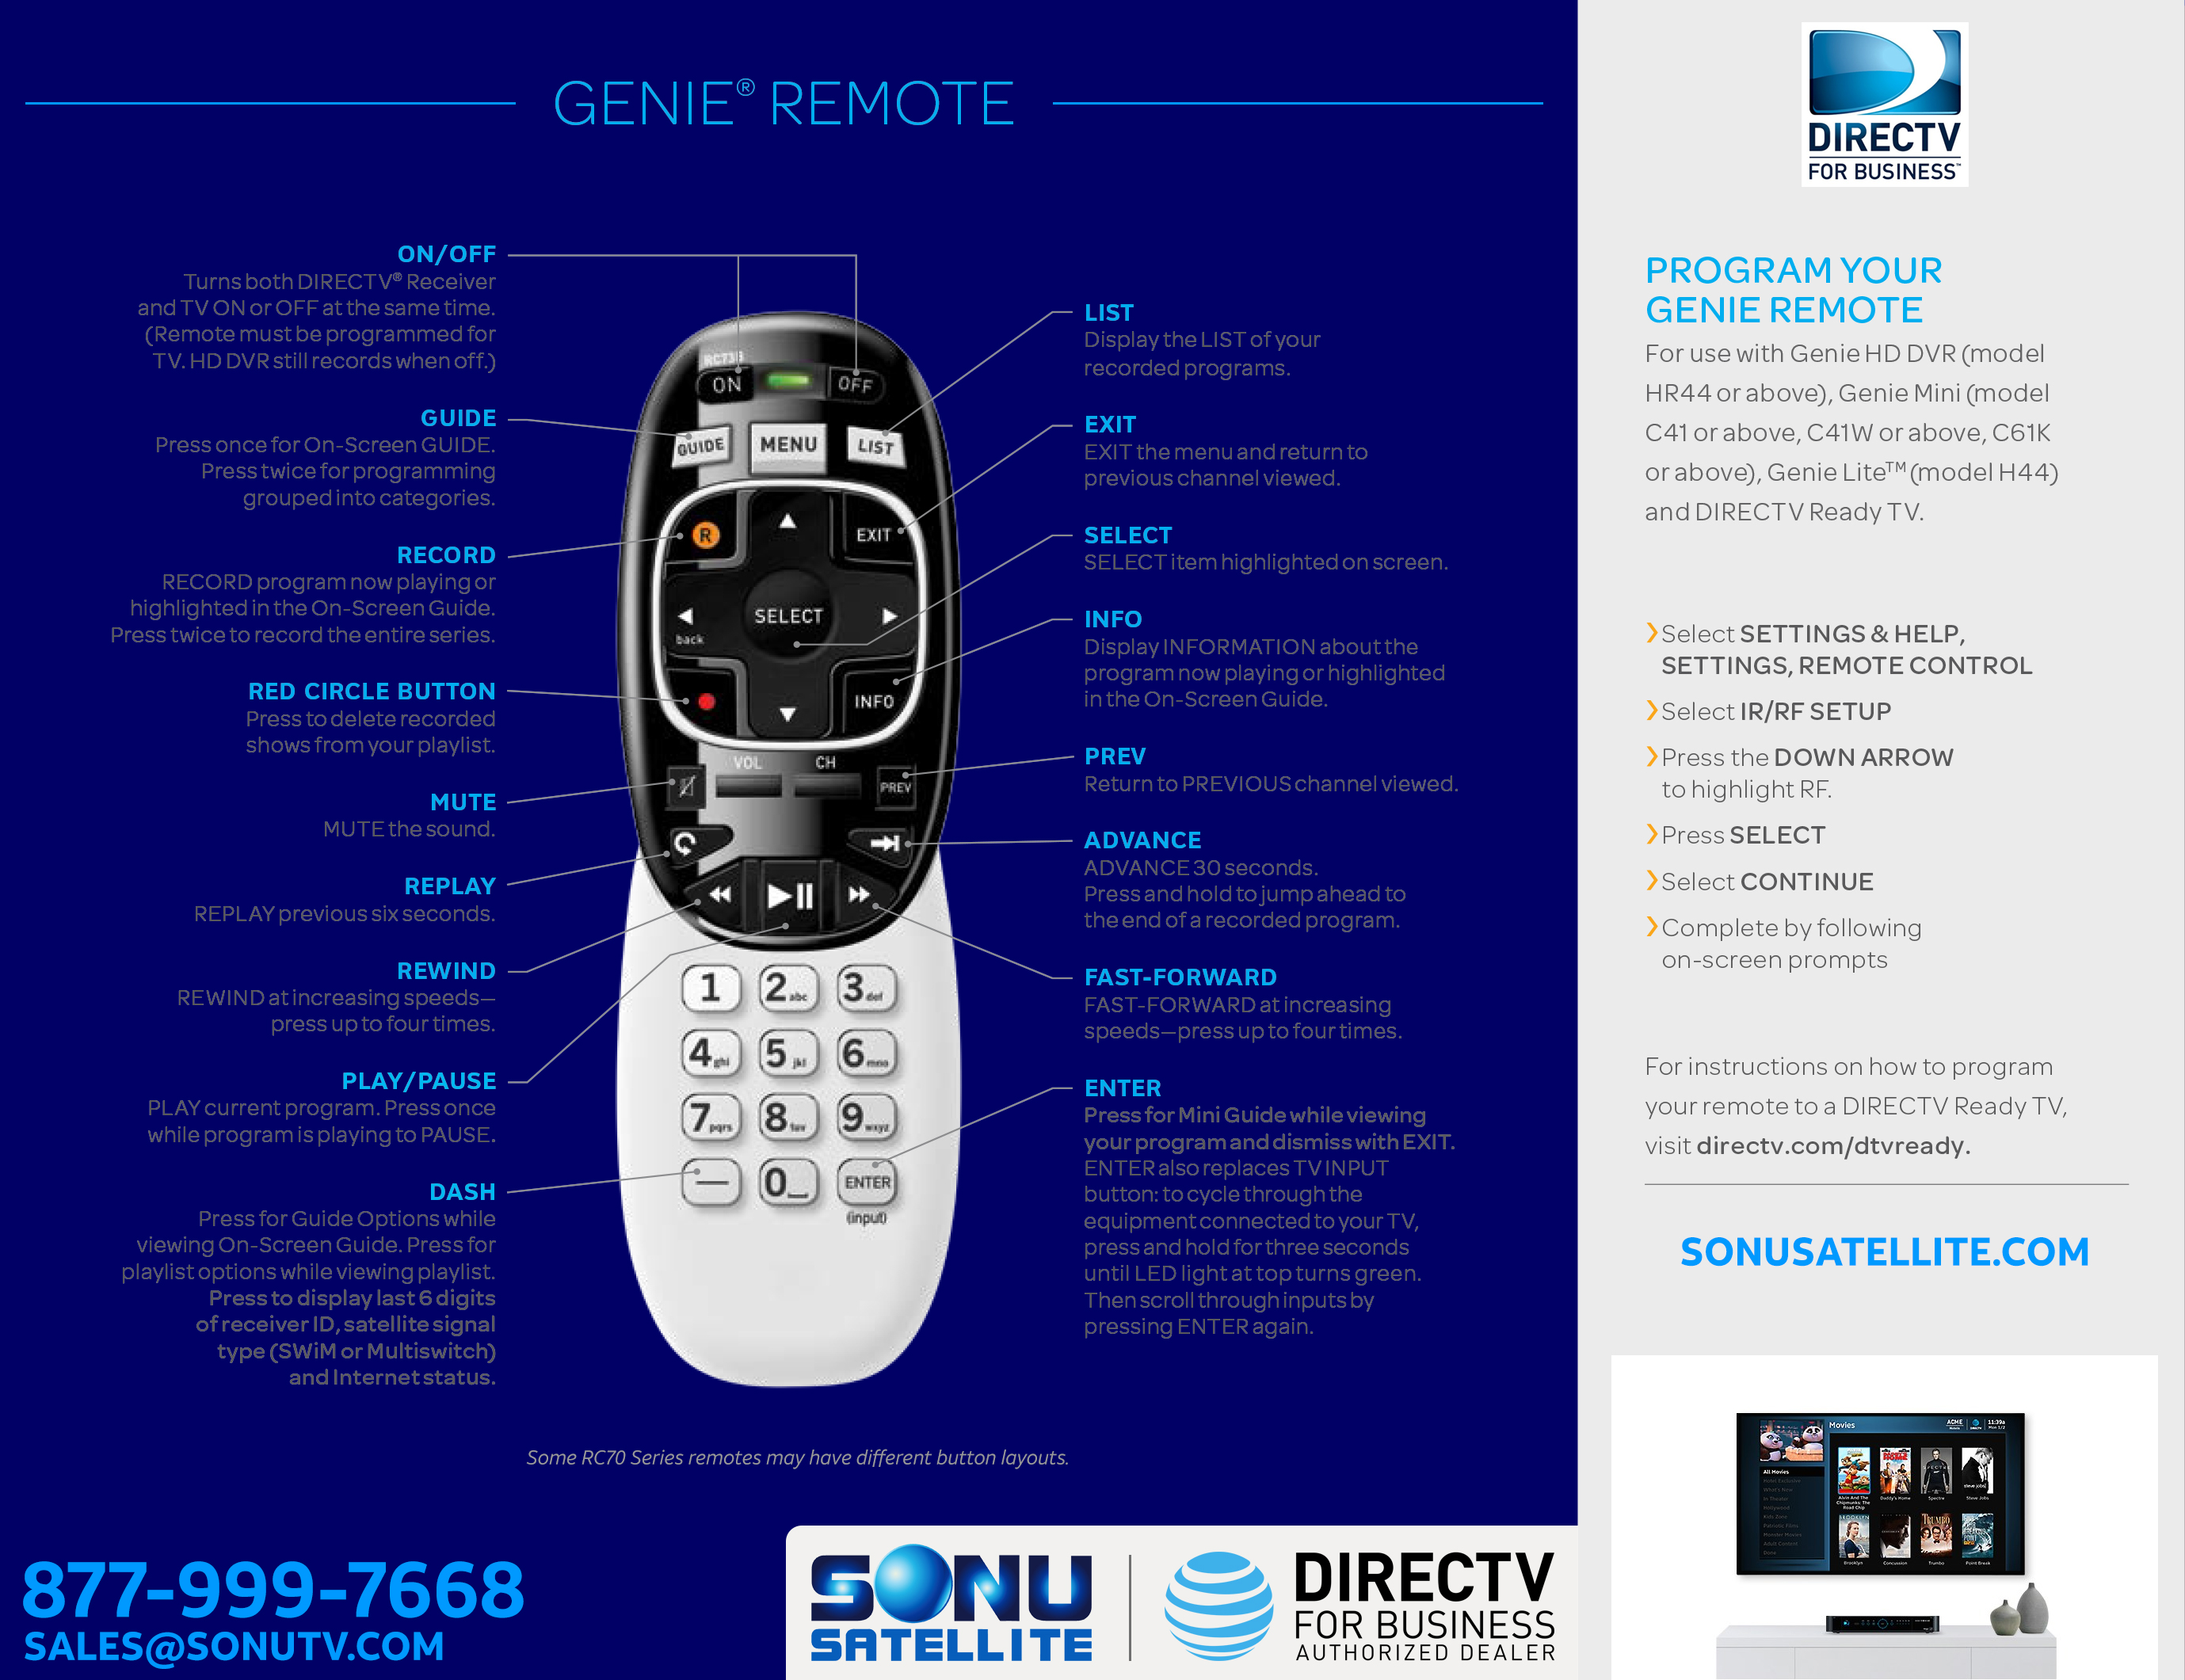 Directv Remote Troubleshooting And Guide Sonu Satellite Tv